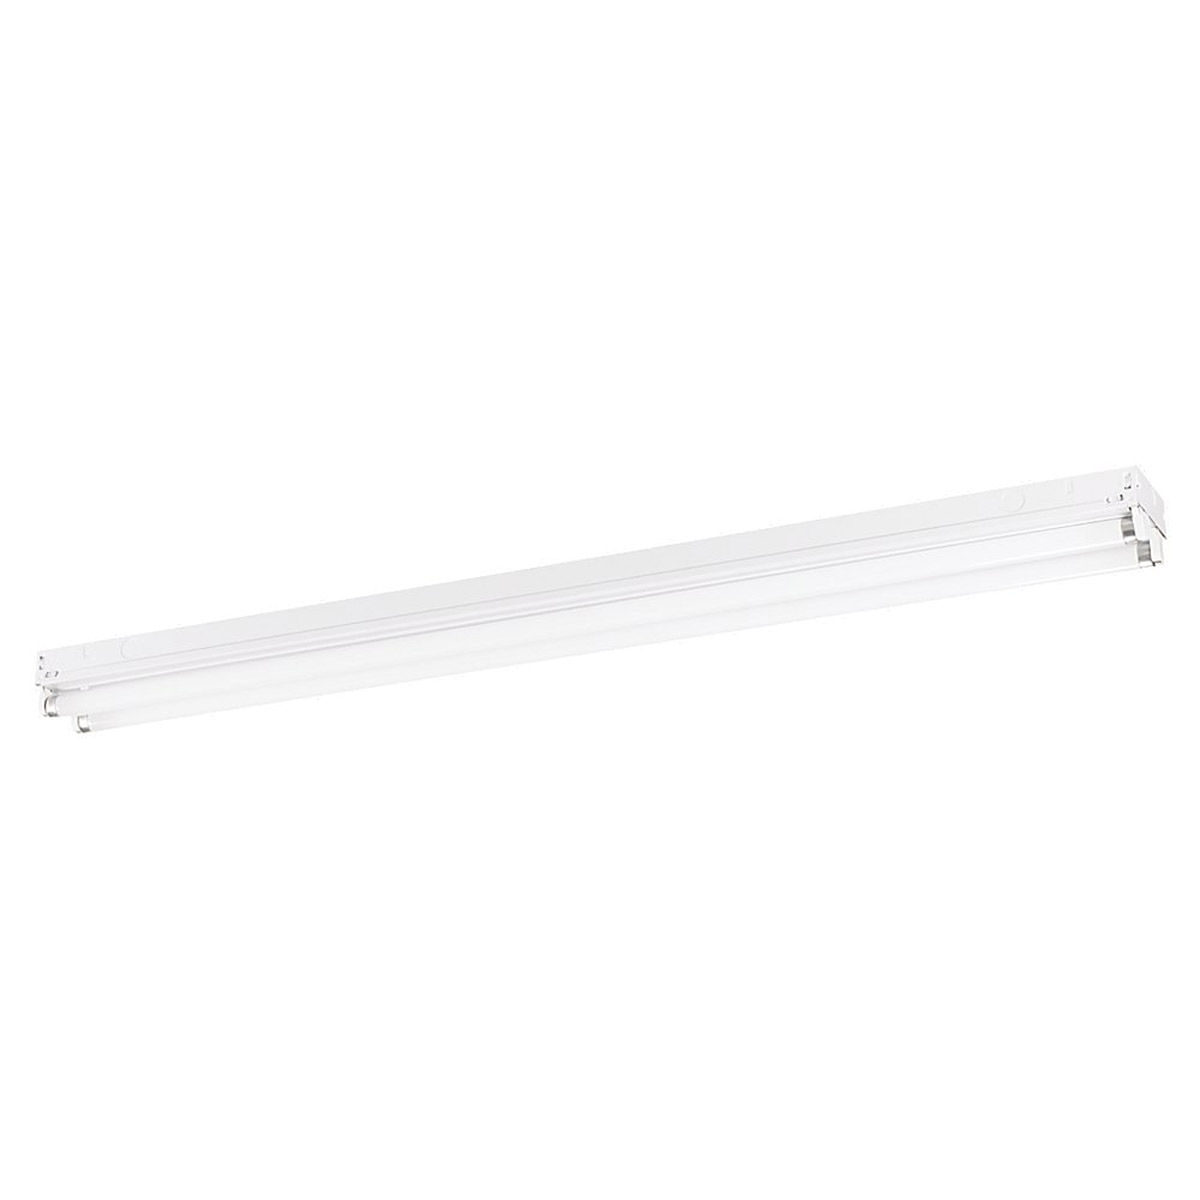 Sea Gull Lighting Signature 2 Light Fluorescent Strip Light in White 59022LE-15 photo